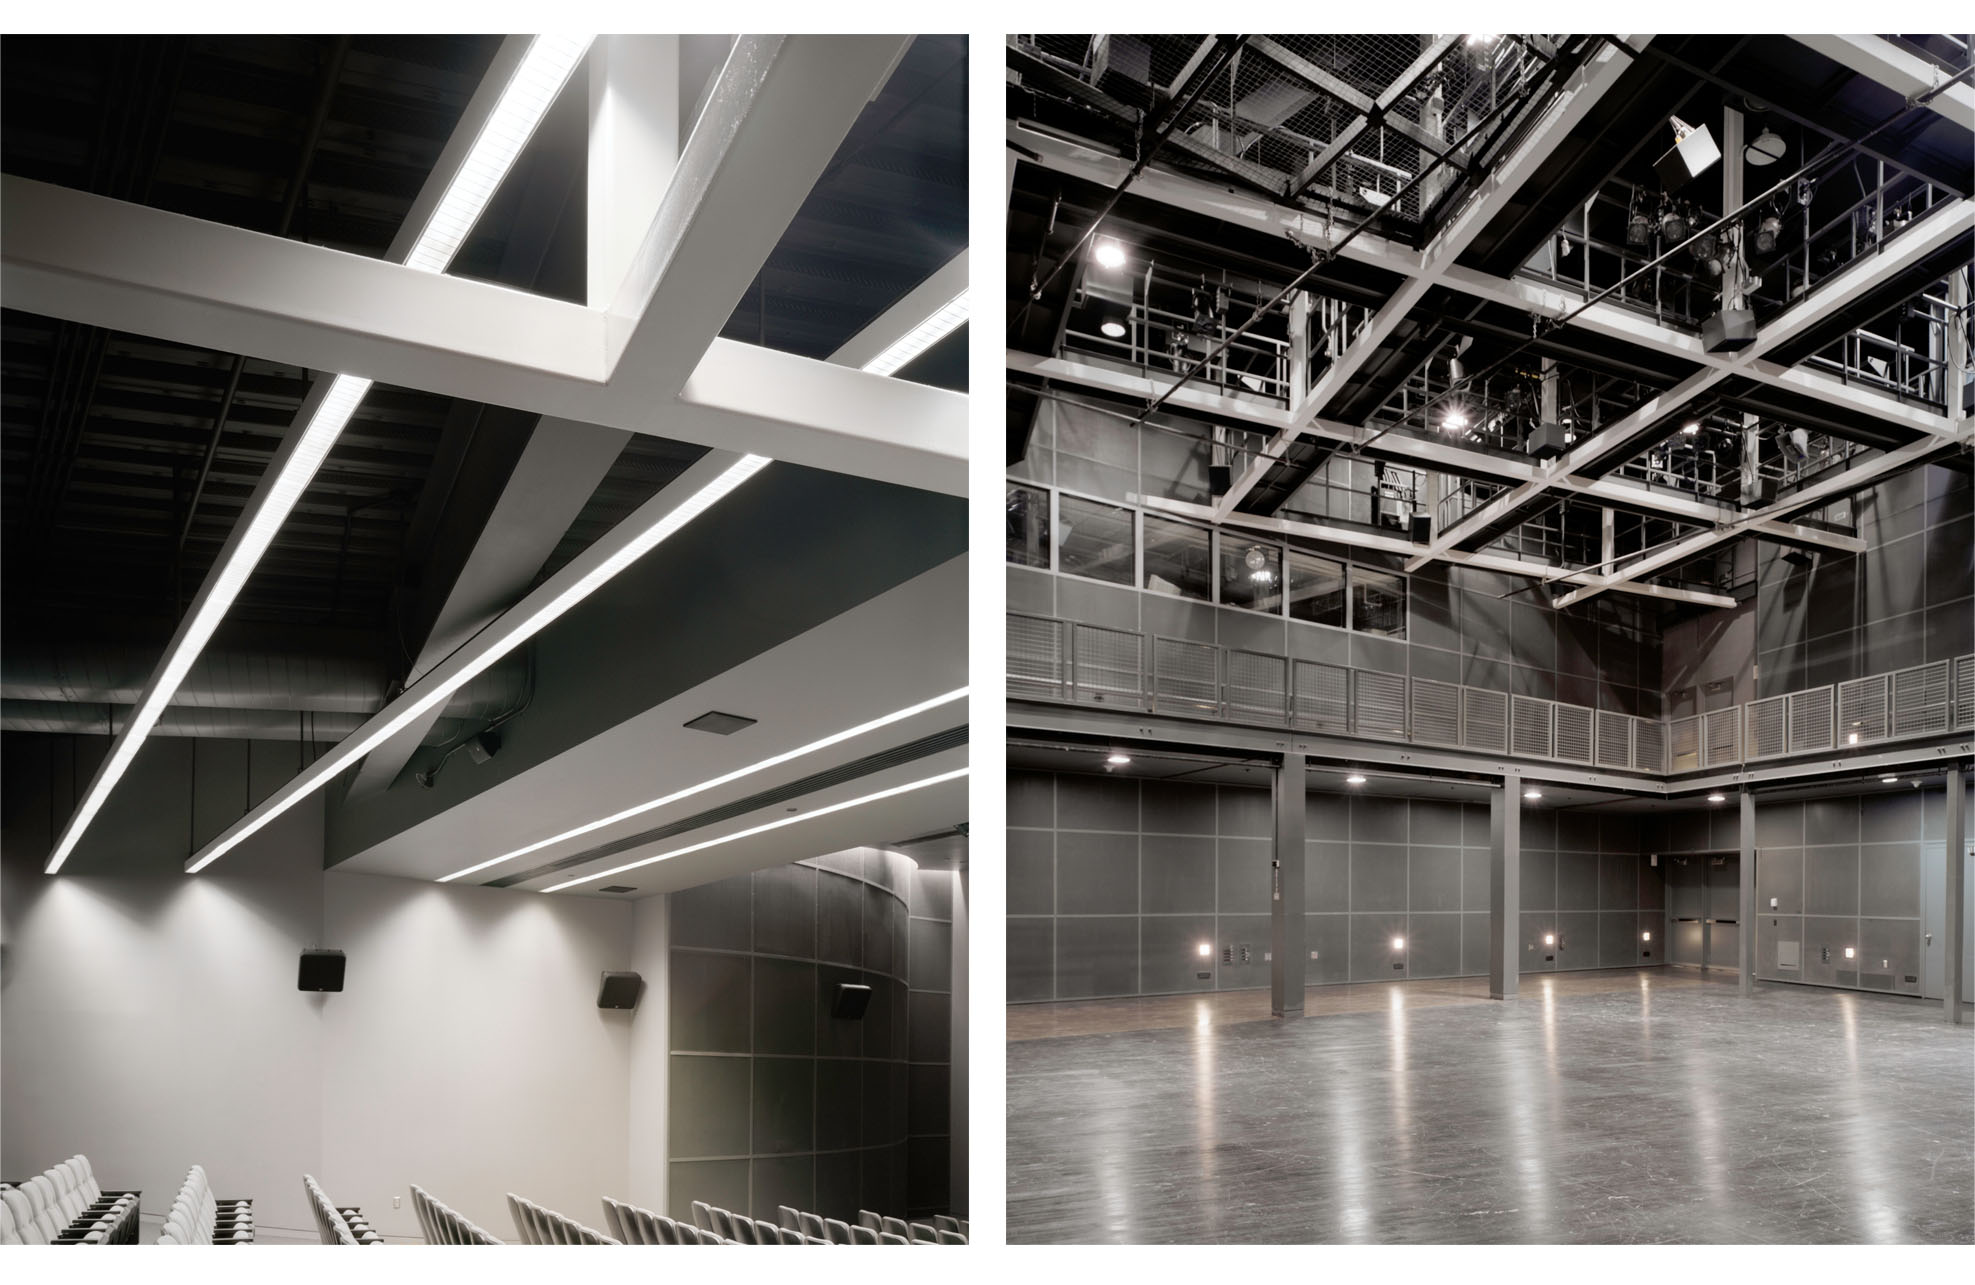 The Performance Space at the Wexner Center for the Arts by Jerome M. Scott Architects